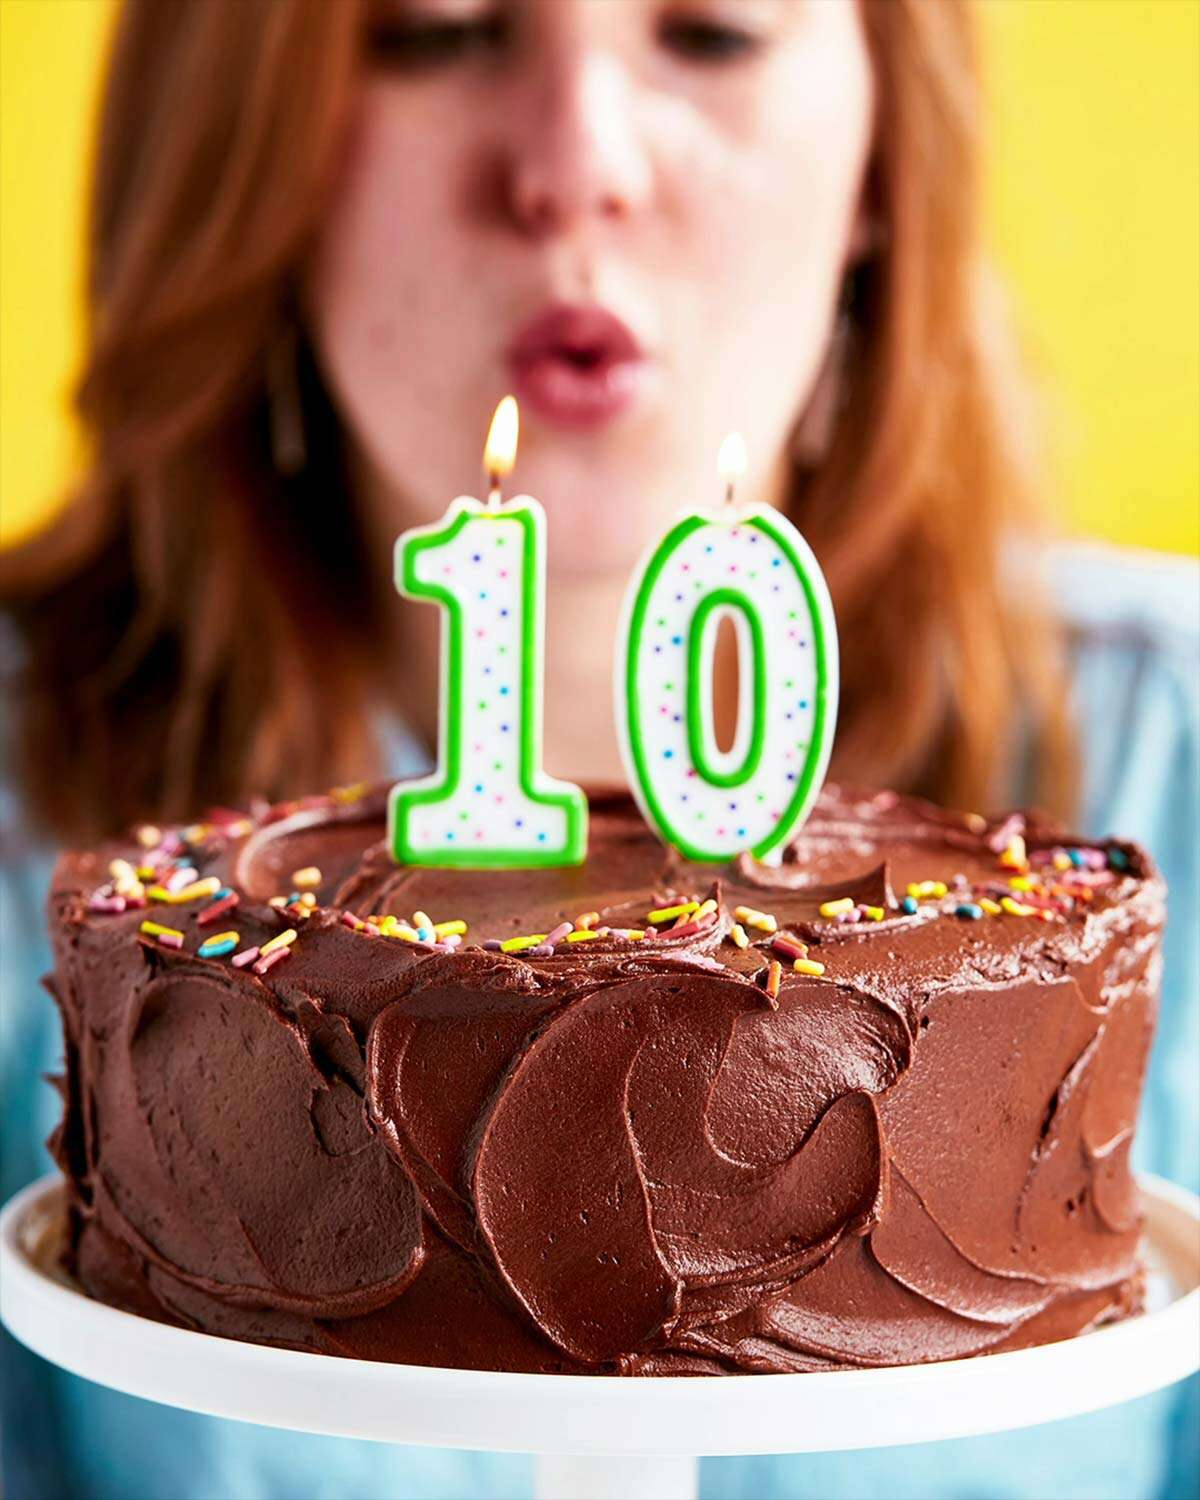 A woman blowing out the candles on a birthday cake with the number 10 on it